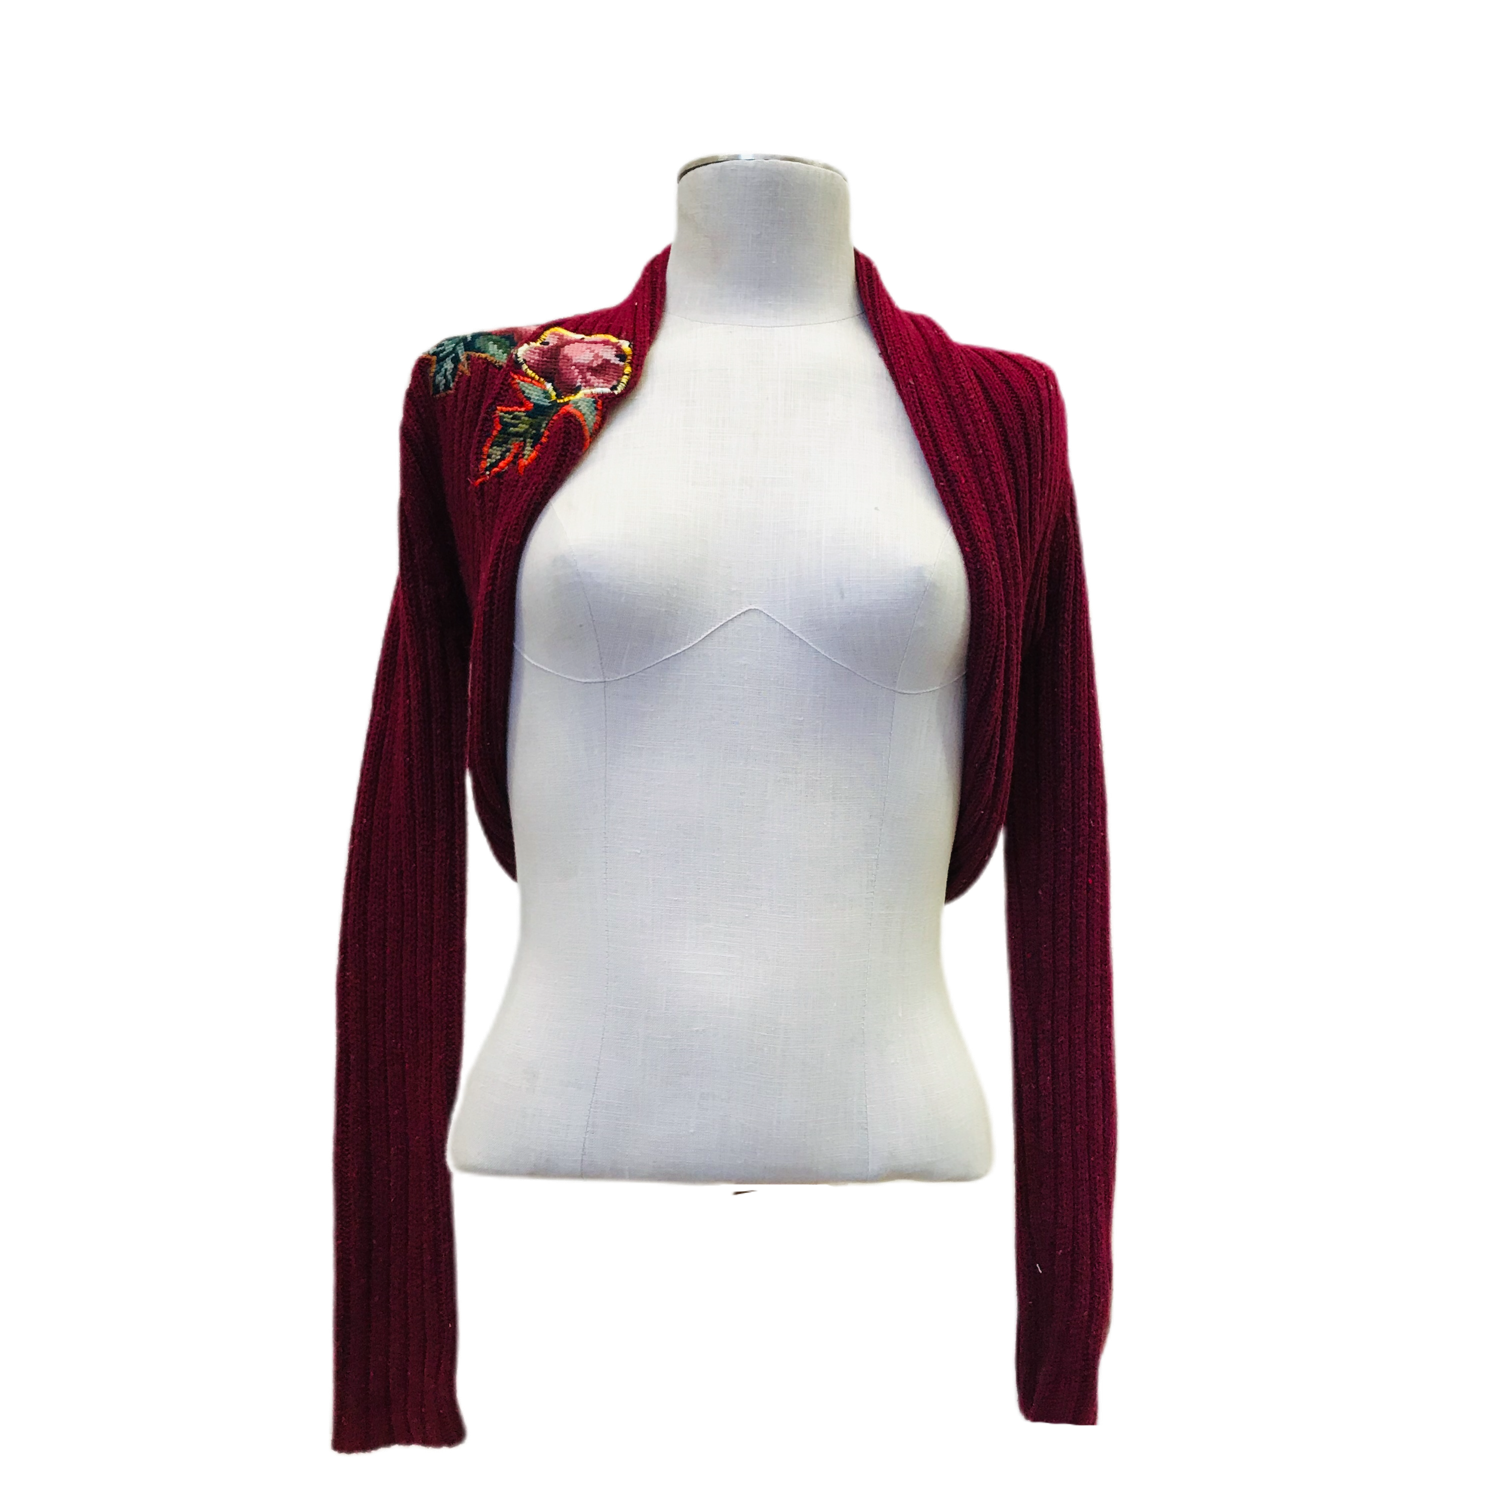 Red Blossom Shrug / Size Small